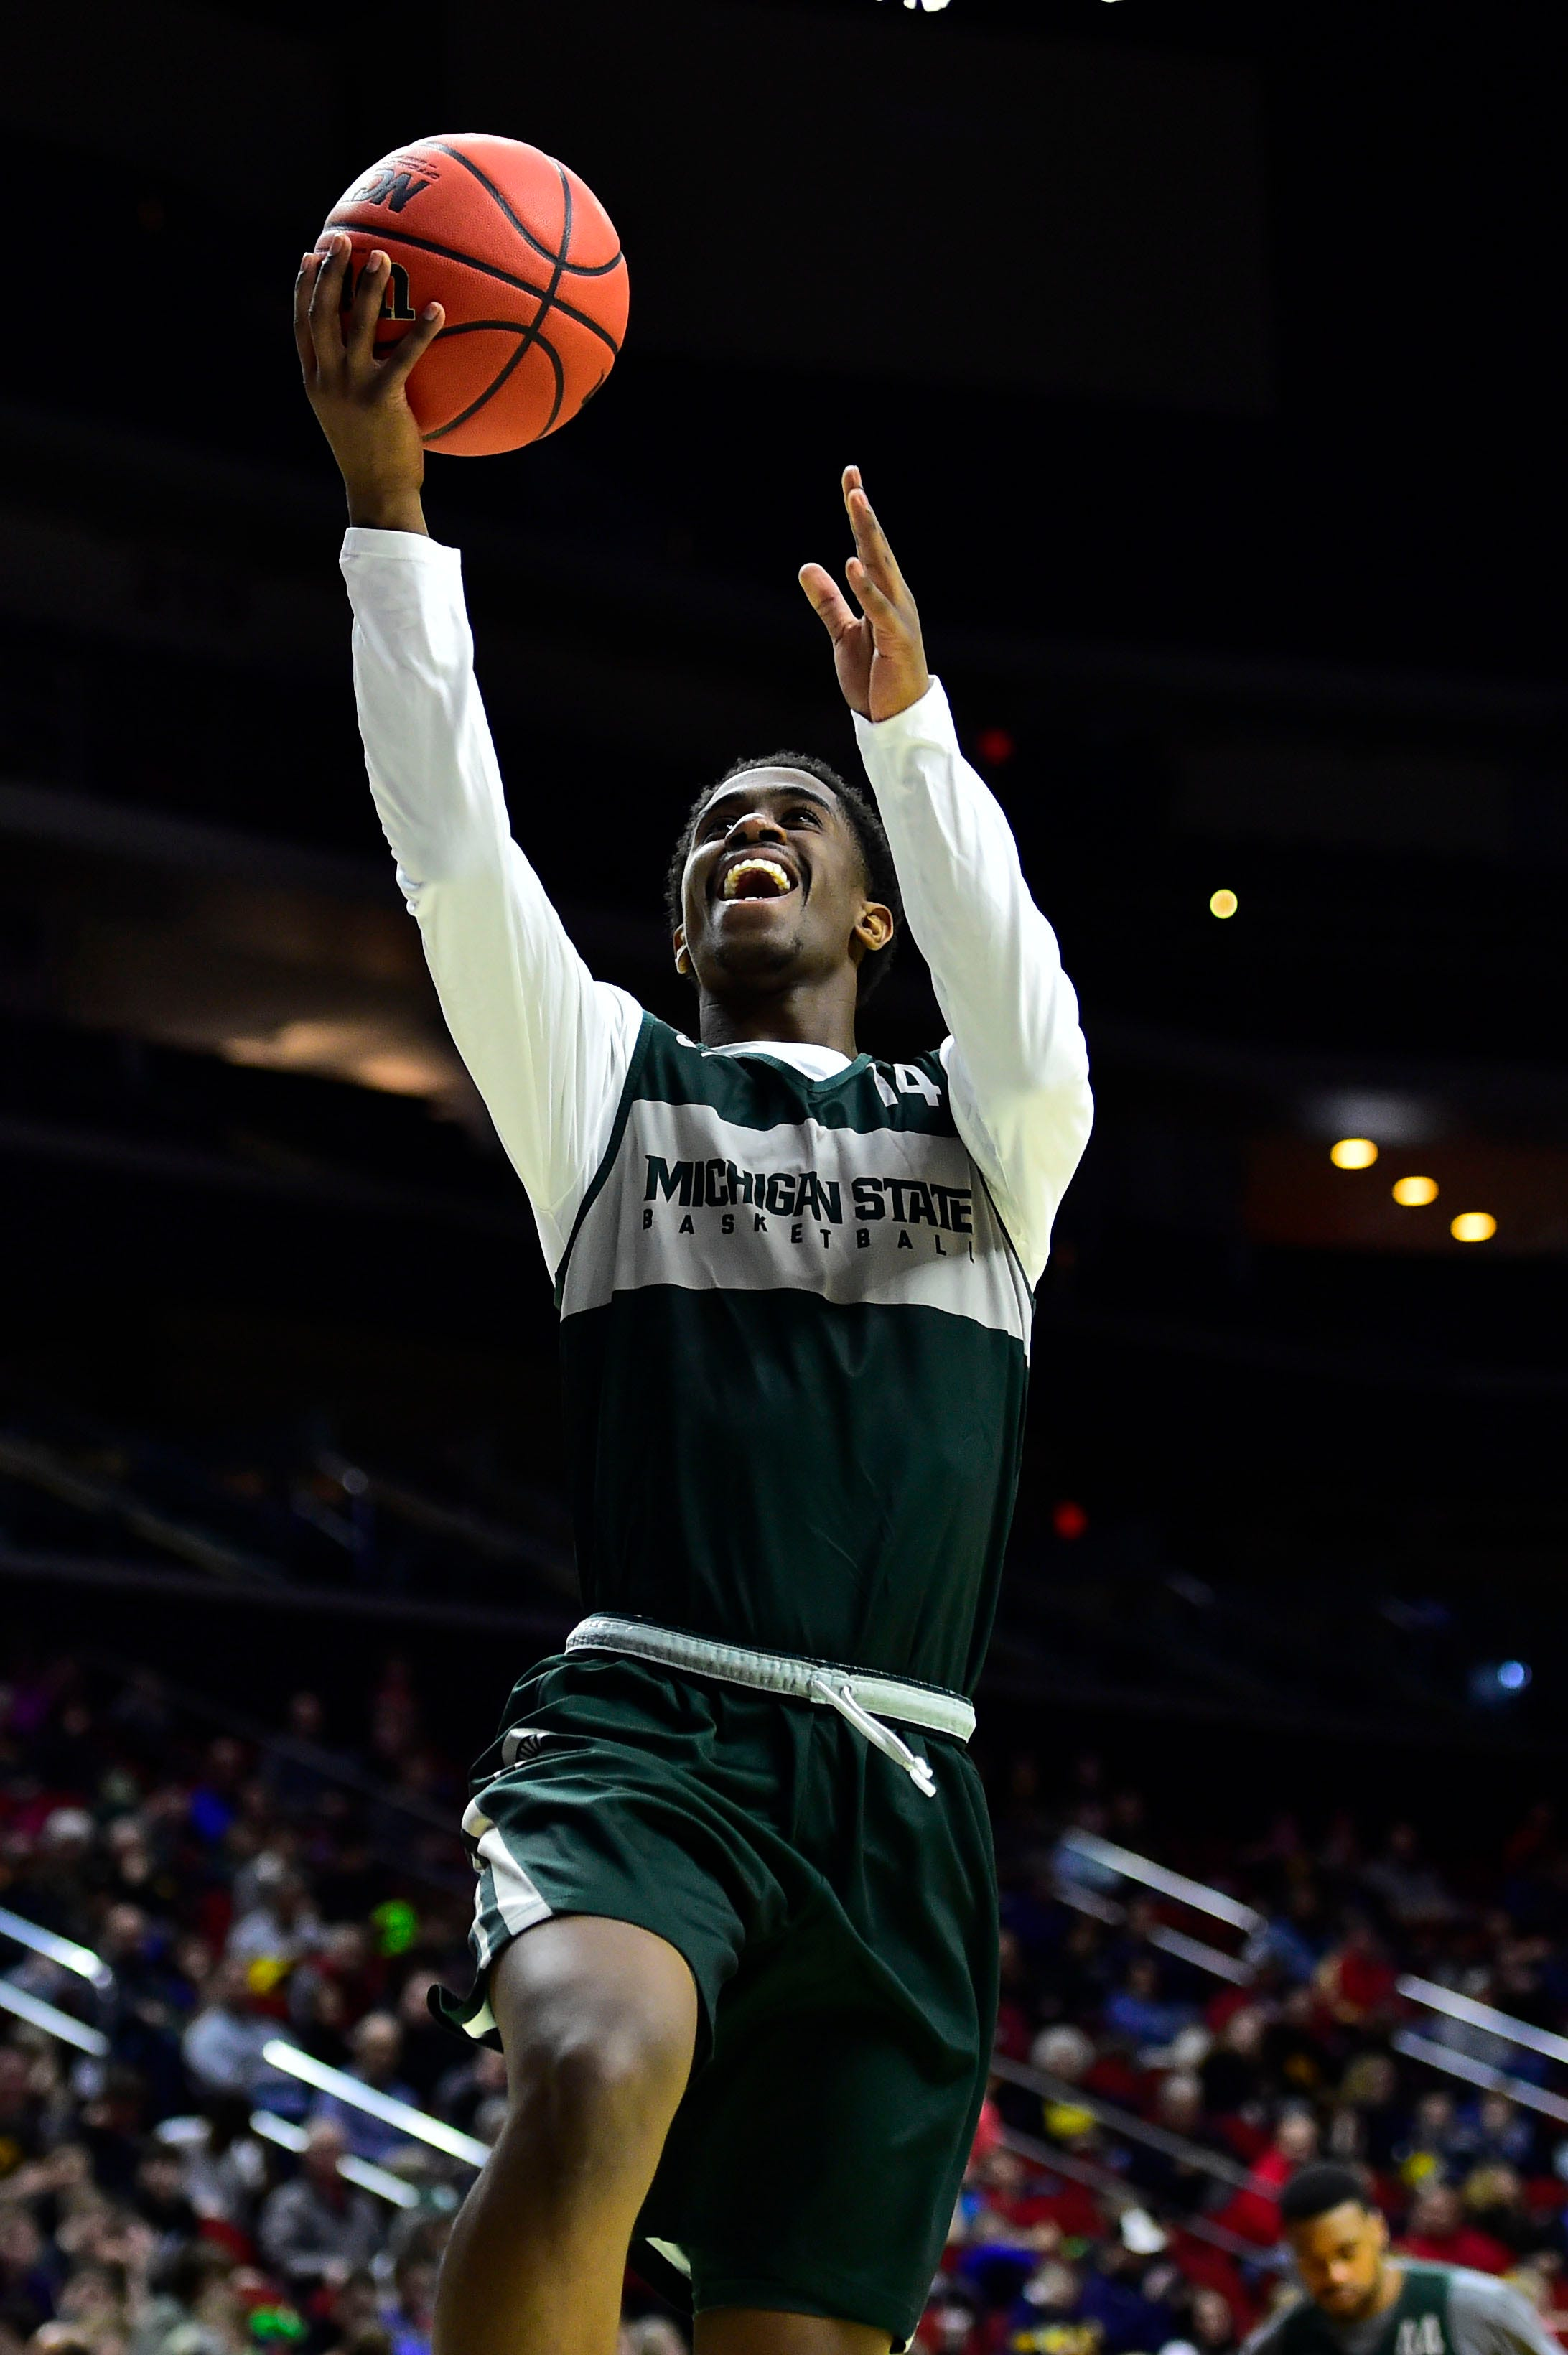 AG: Charges not warranted for former Michigan State basketball player accused of sex assault